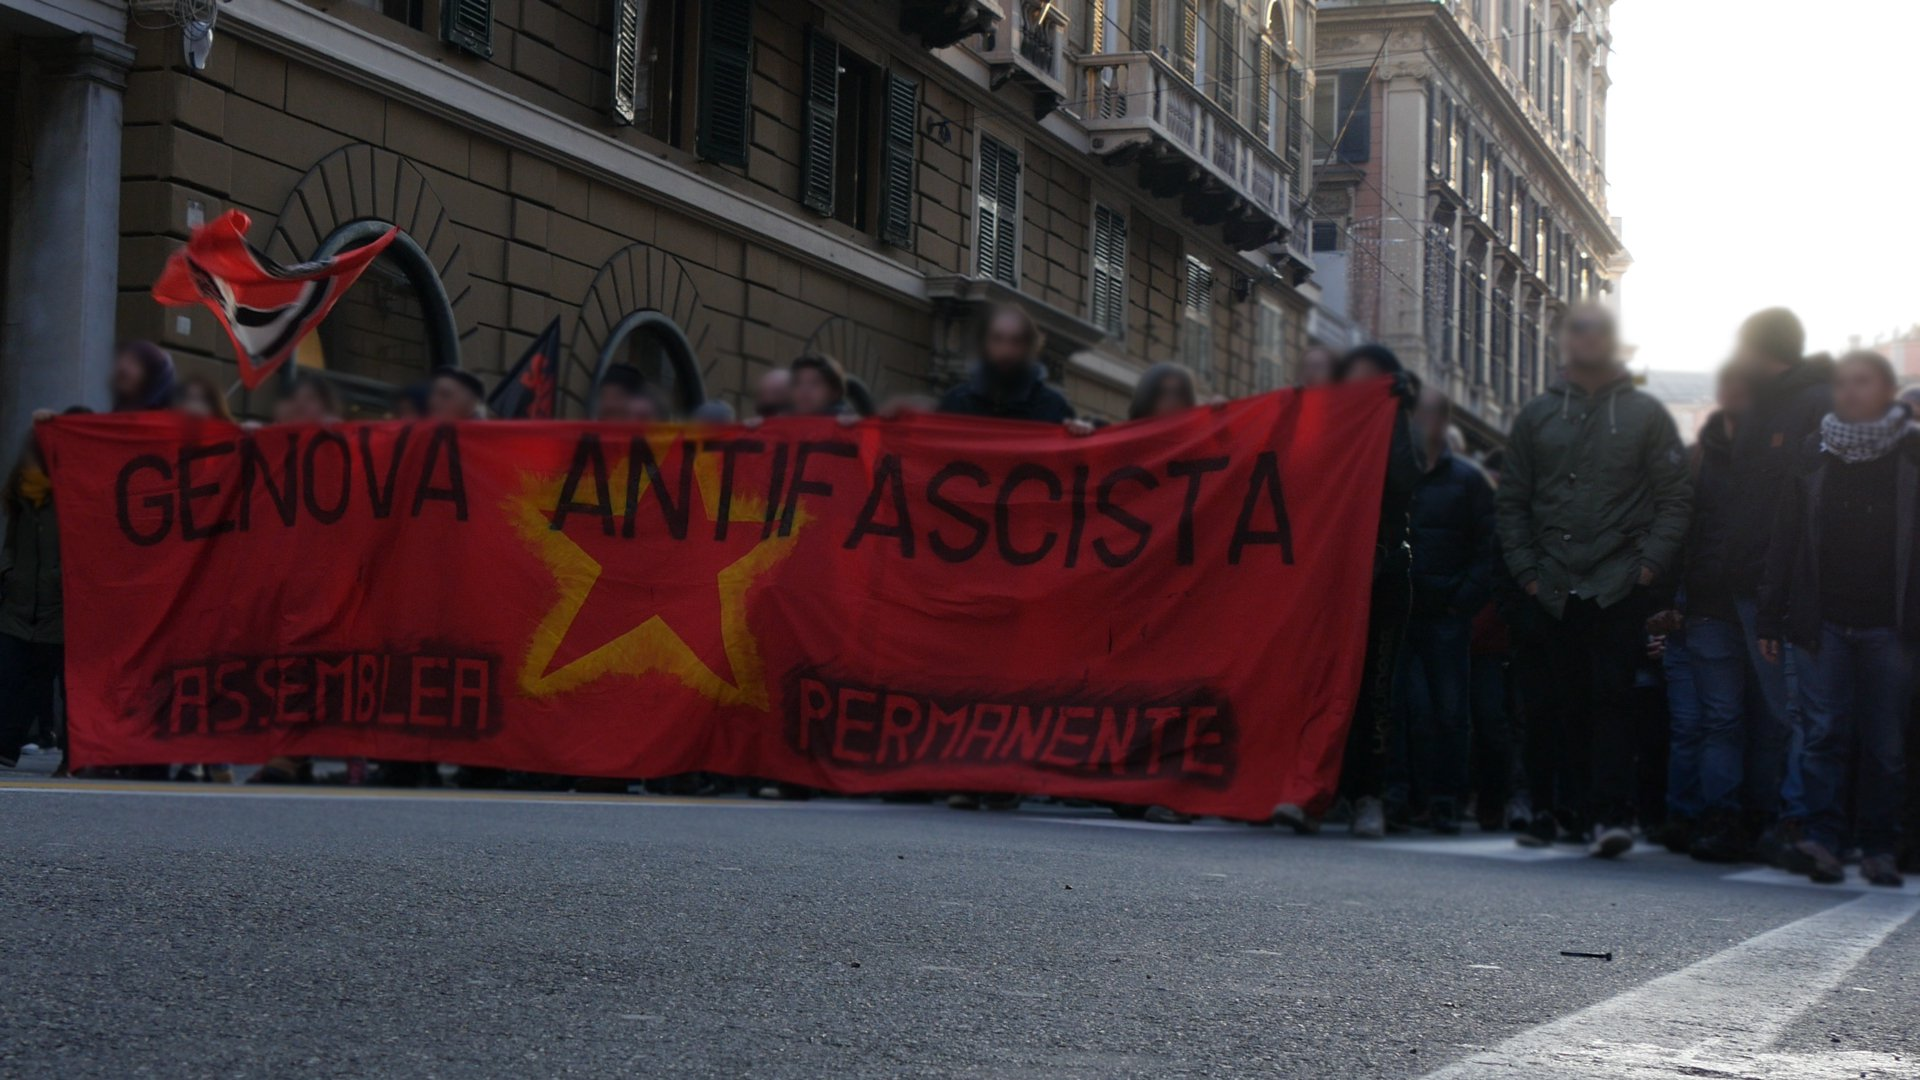 Banner in der Demonstration in Genua